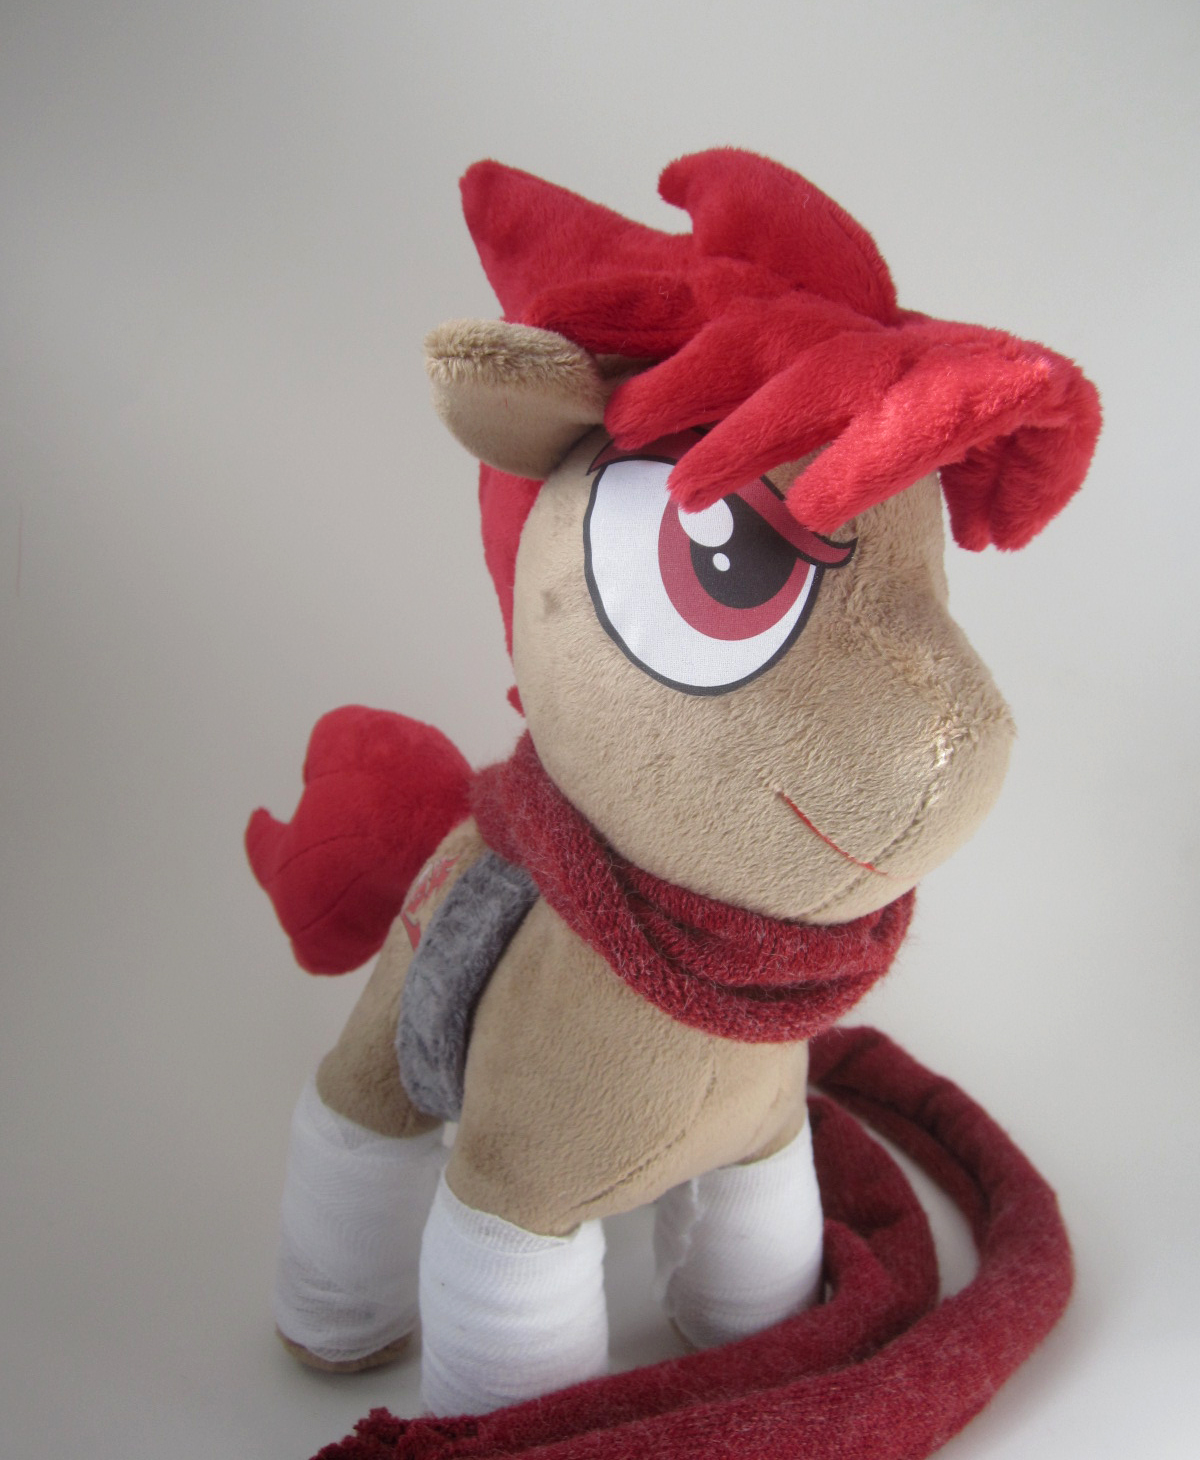 Strider Ponyru Plushie by Brainbread